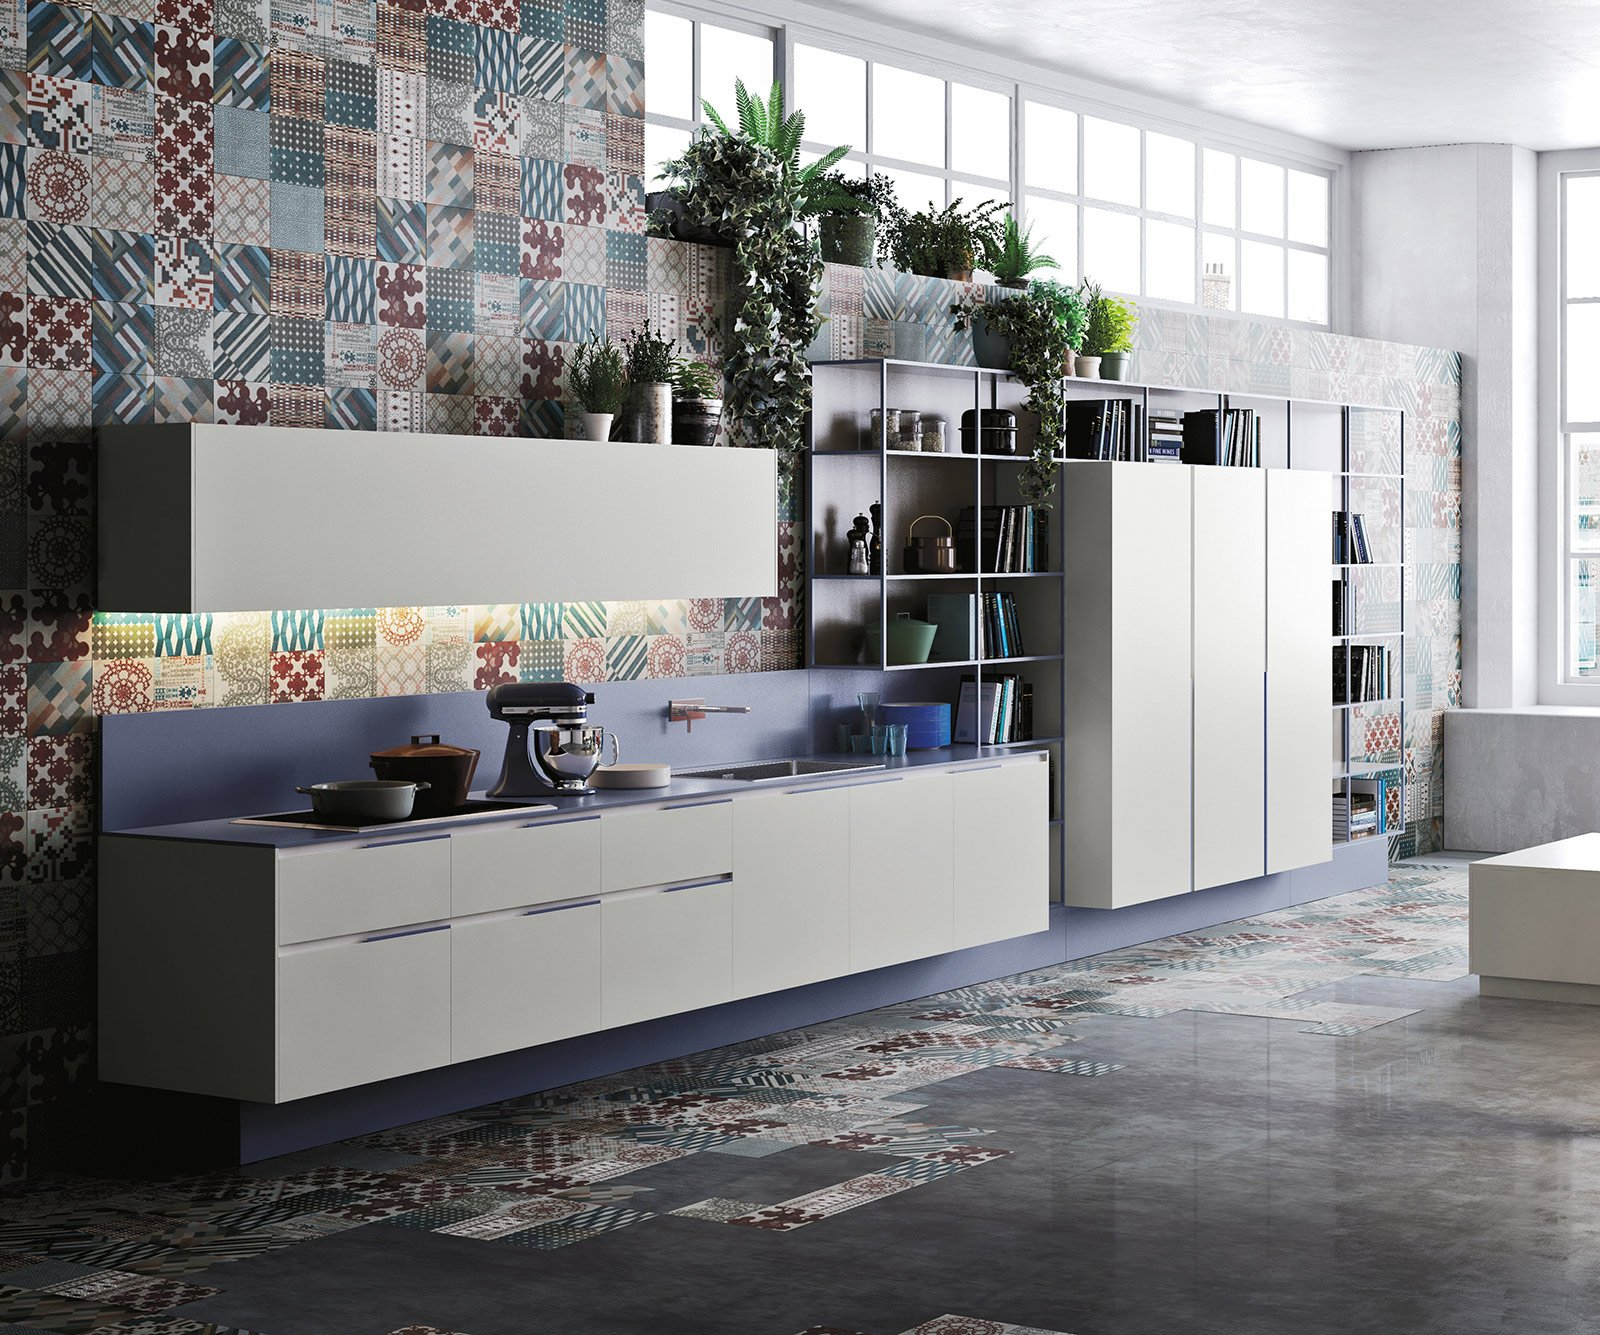 Galley Kitchen Ideas 2016: Salone Del Mobile 2014: Mix Di Materiali Per Le Nuove